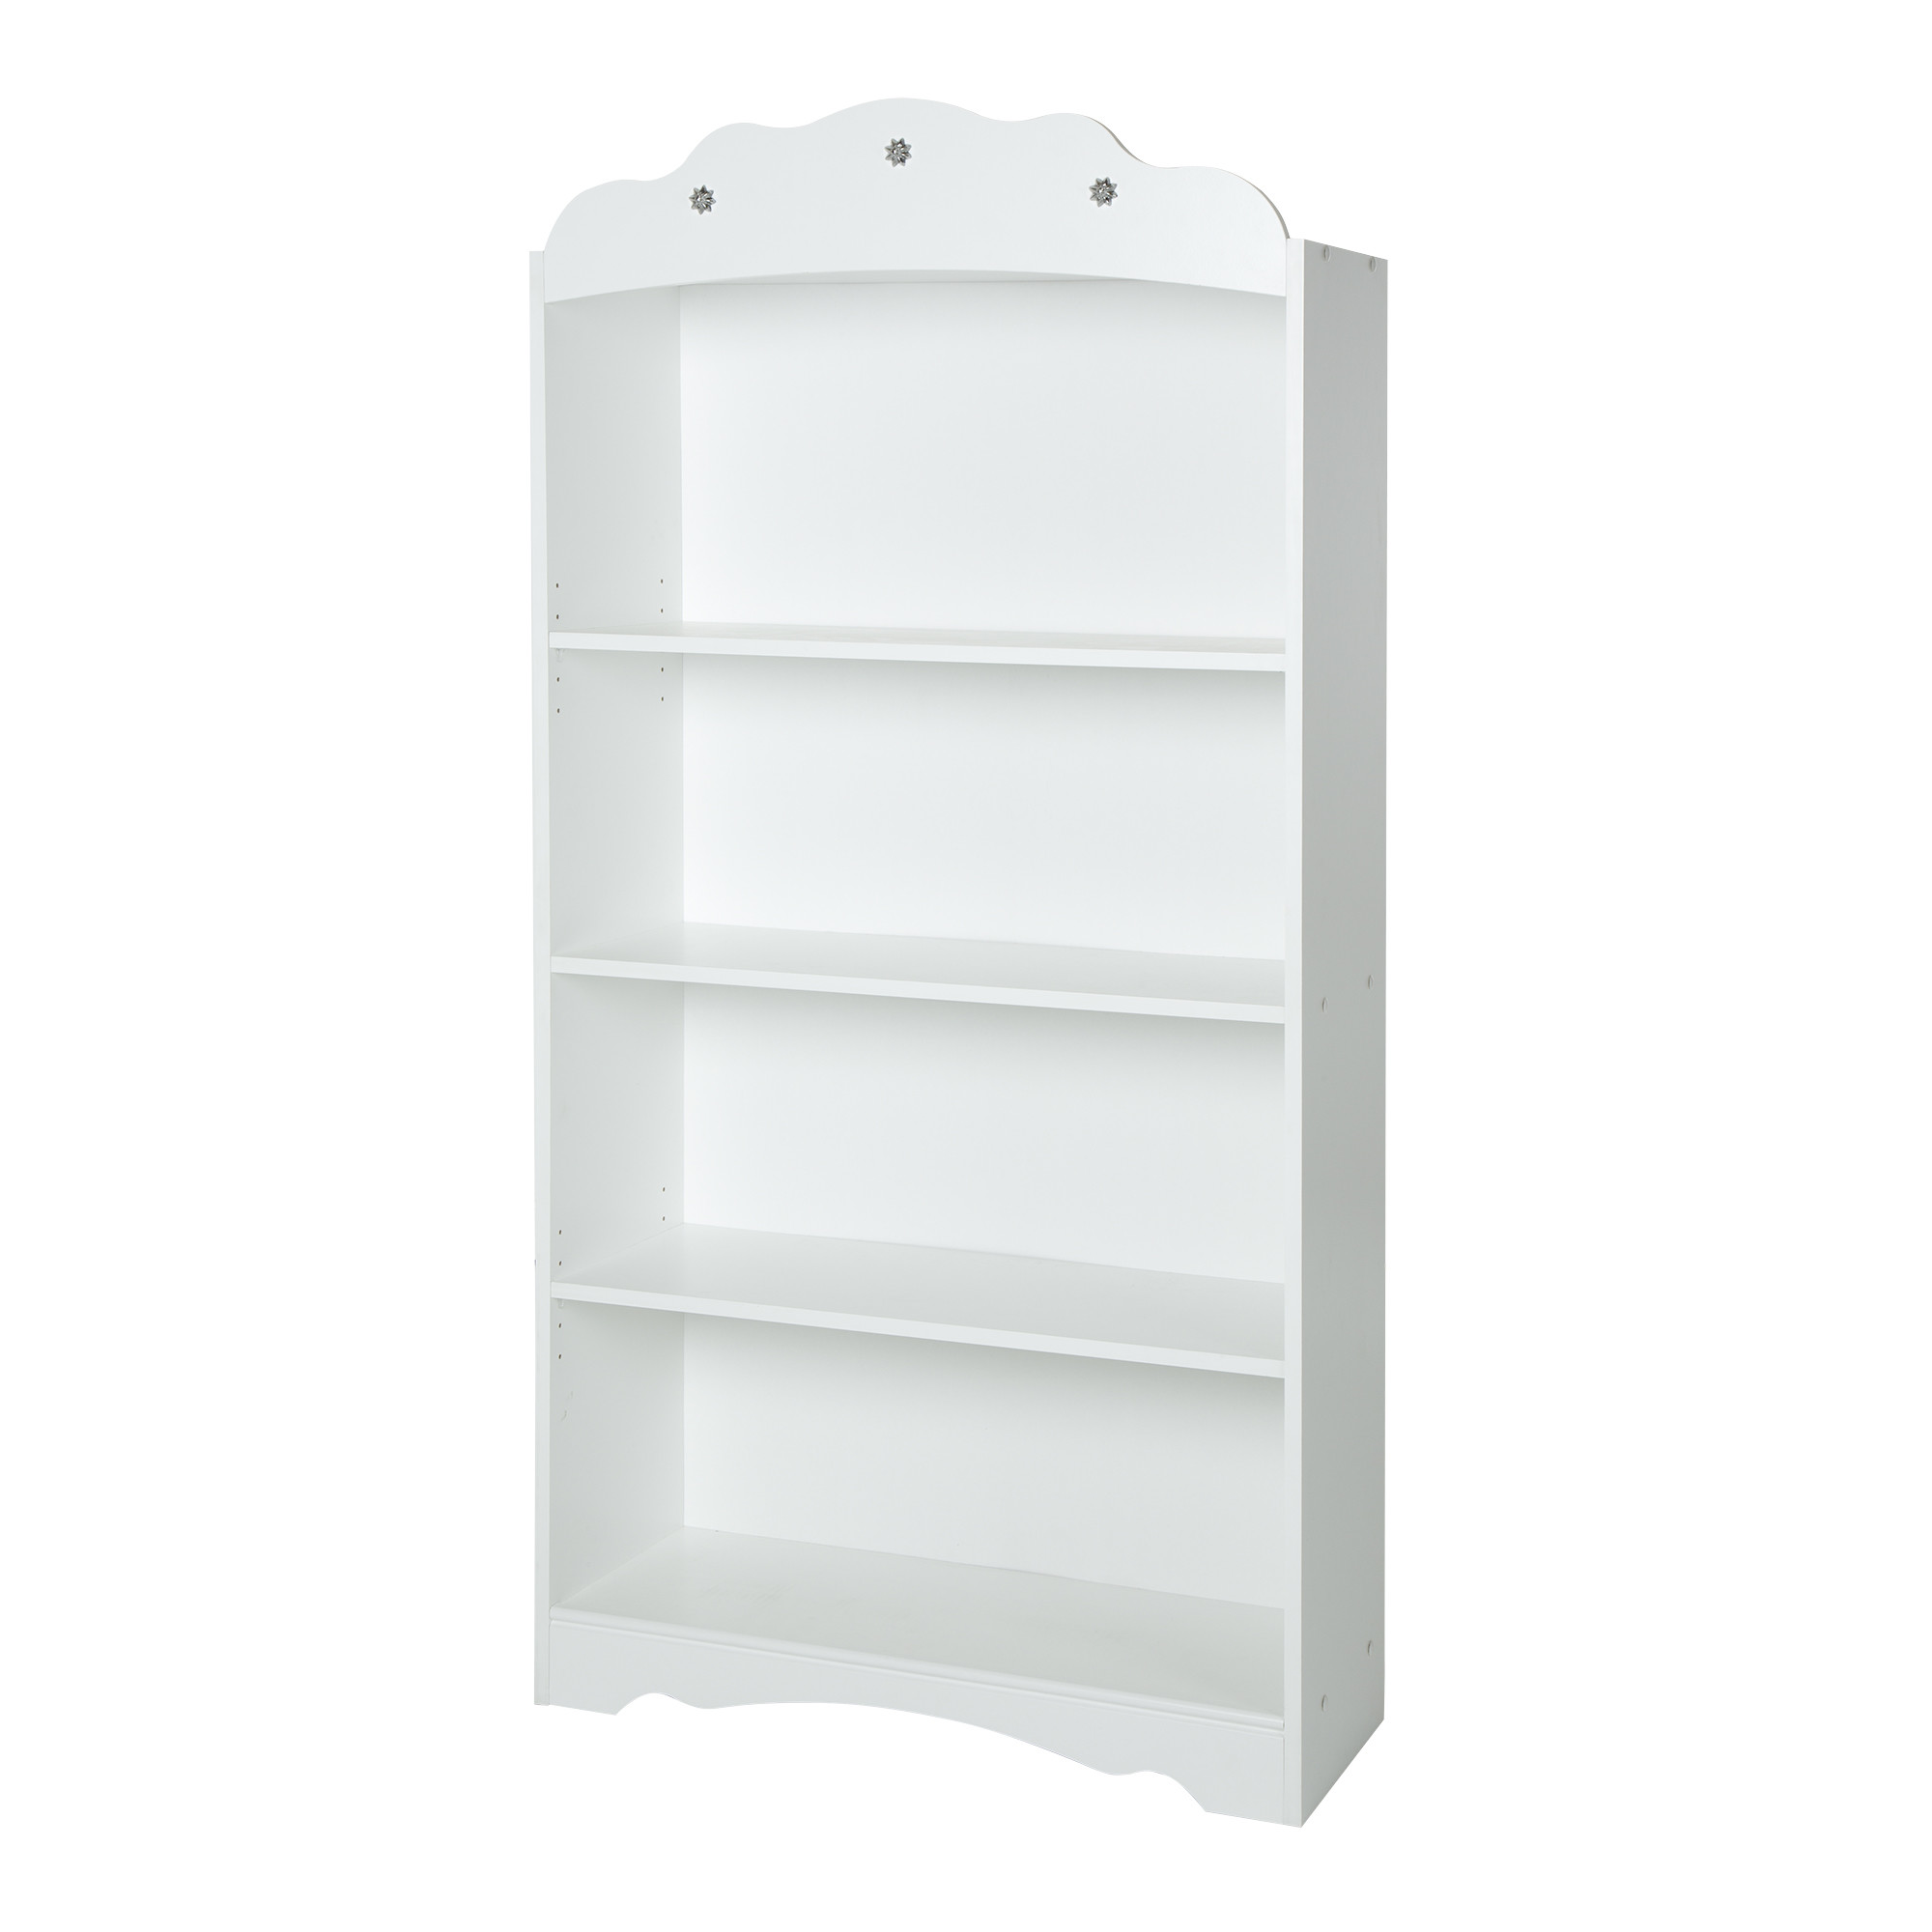 Kmart Bookshelves | Cherry Bookshelves | Kitchen Tables at Kmart